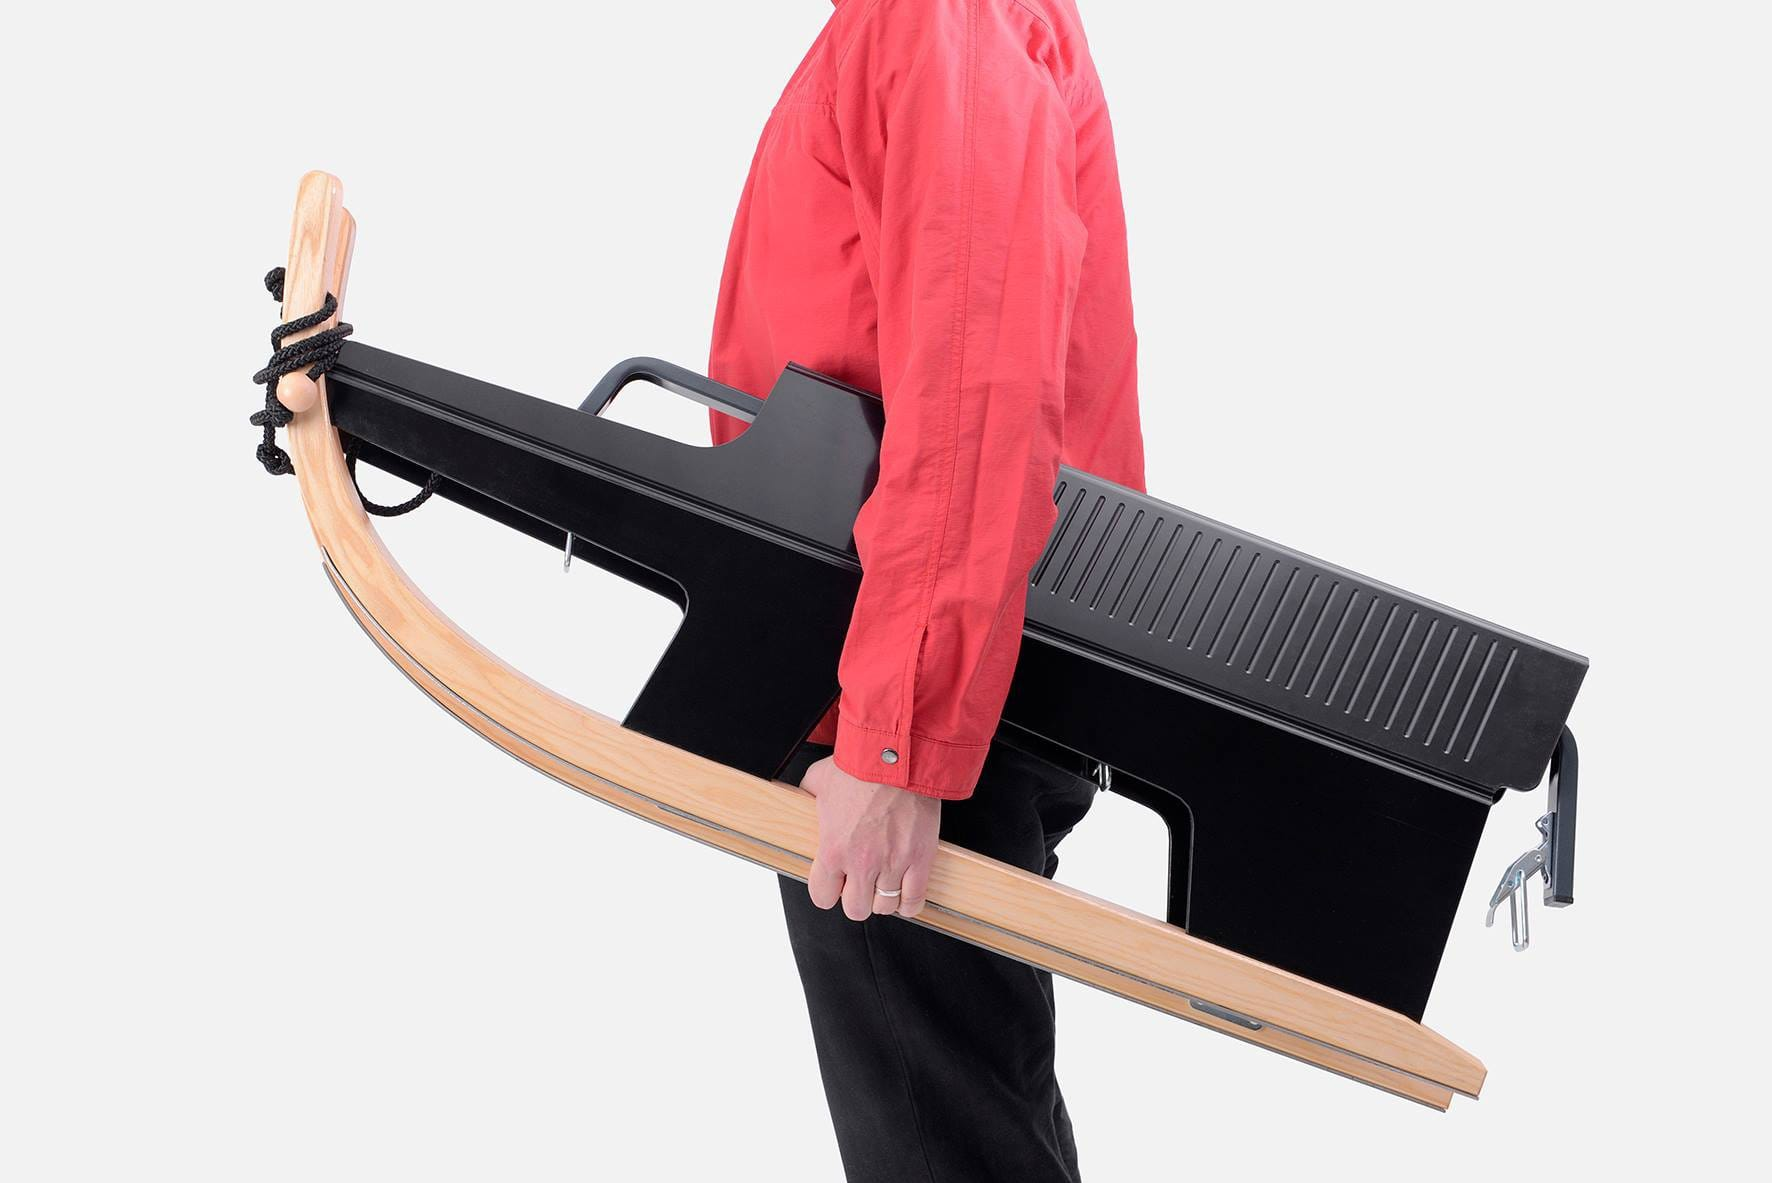 Folding-sled-making-wintertime-fun-portable-and-stackable-6